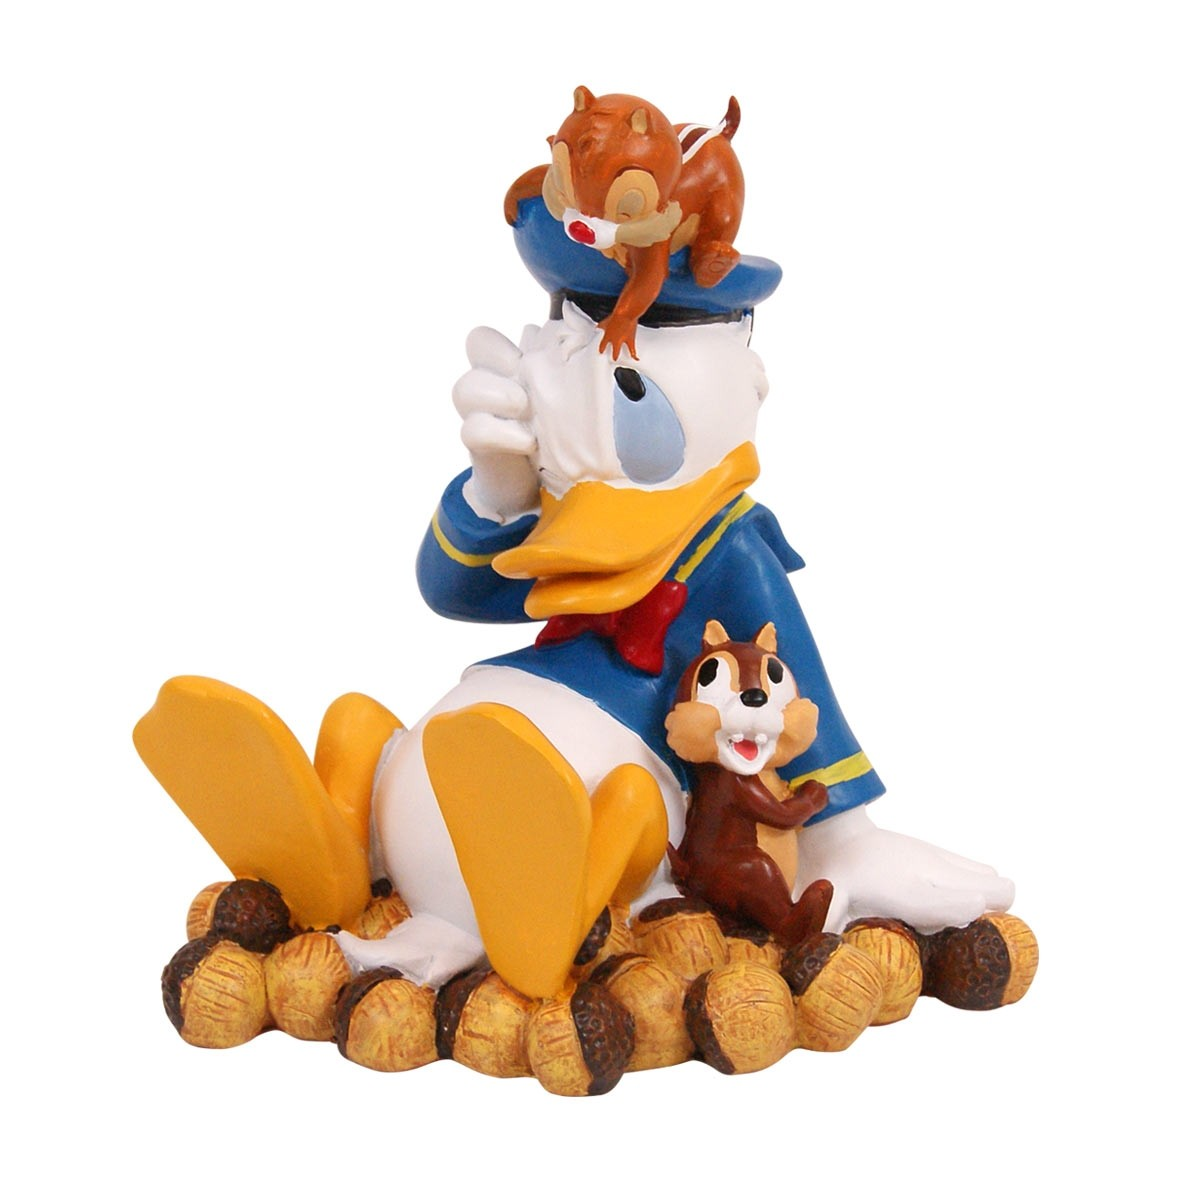 "9"" Tall Disney's Donald with Chip and Dale"